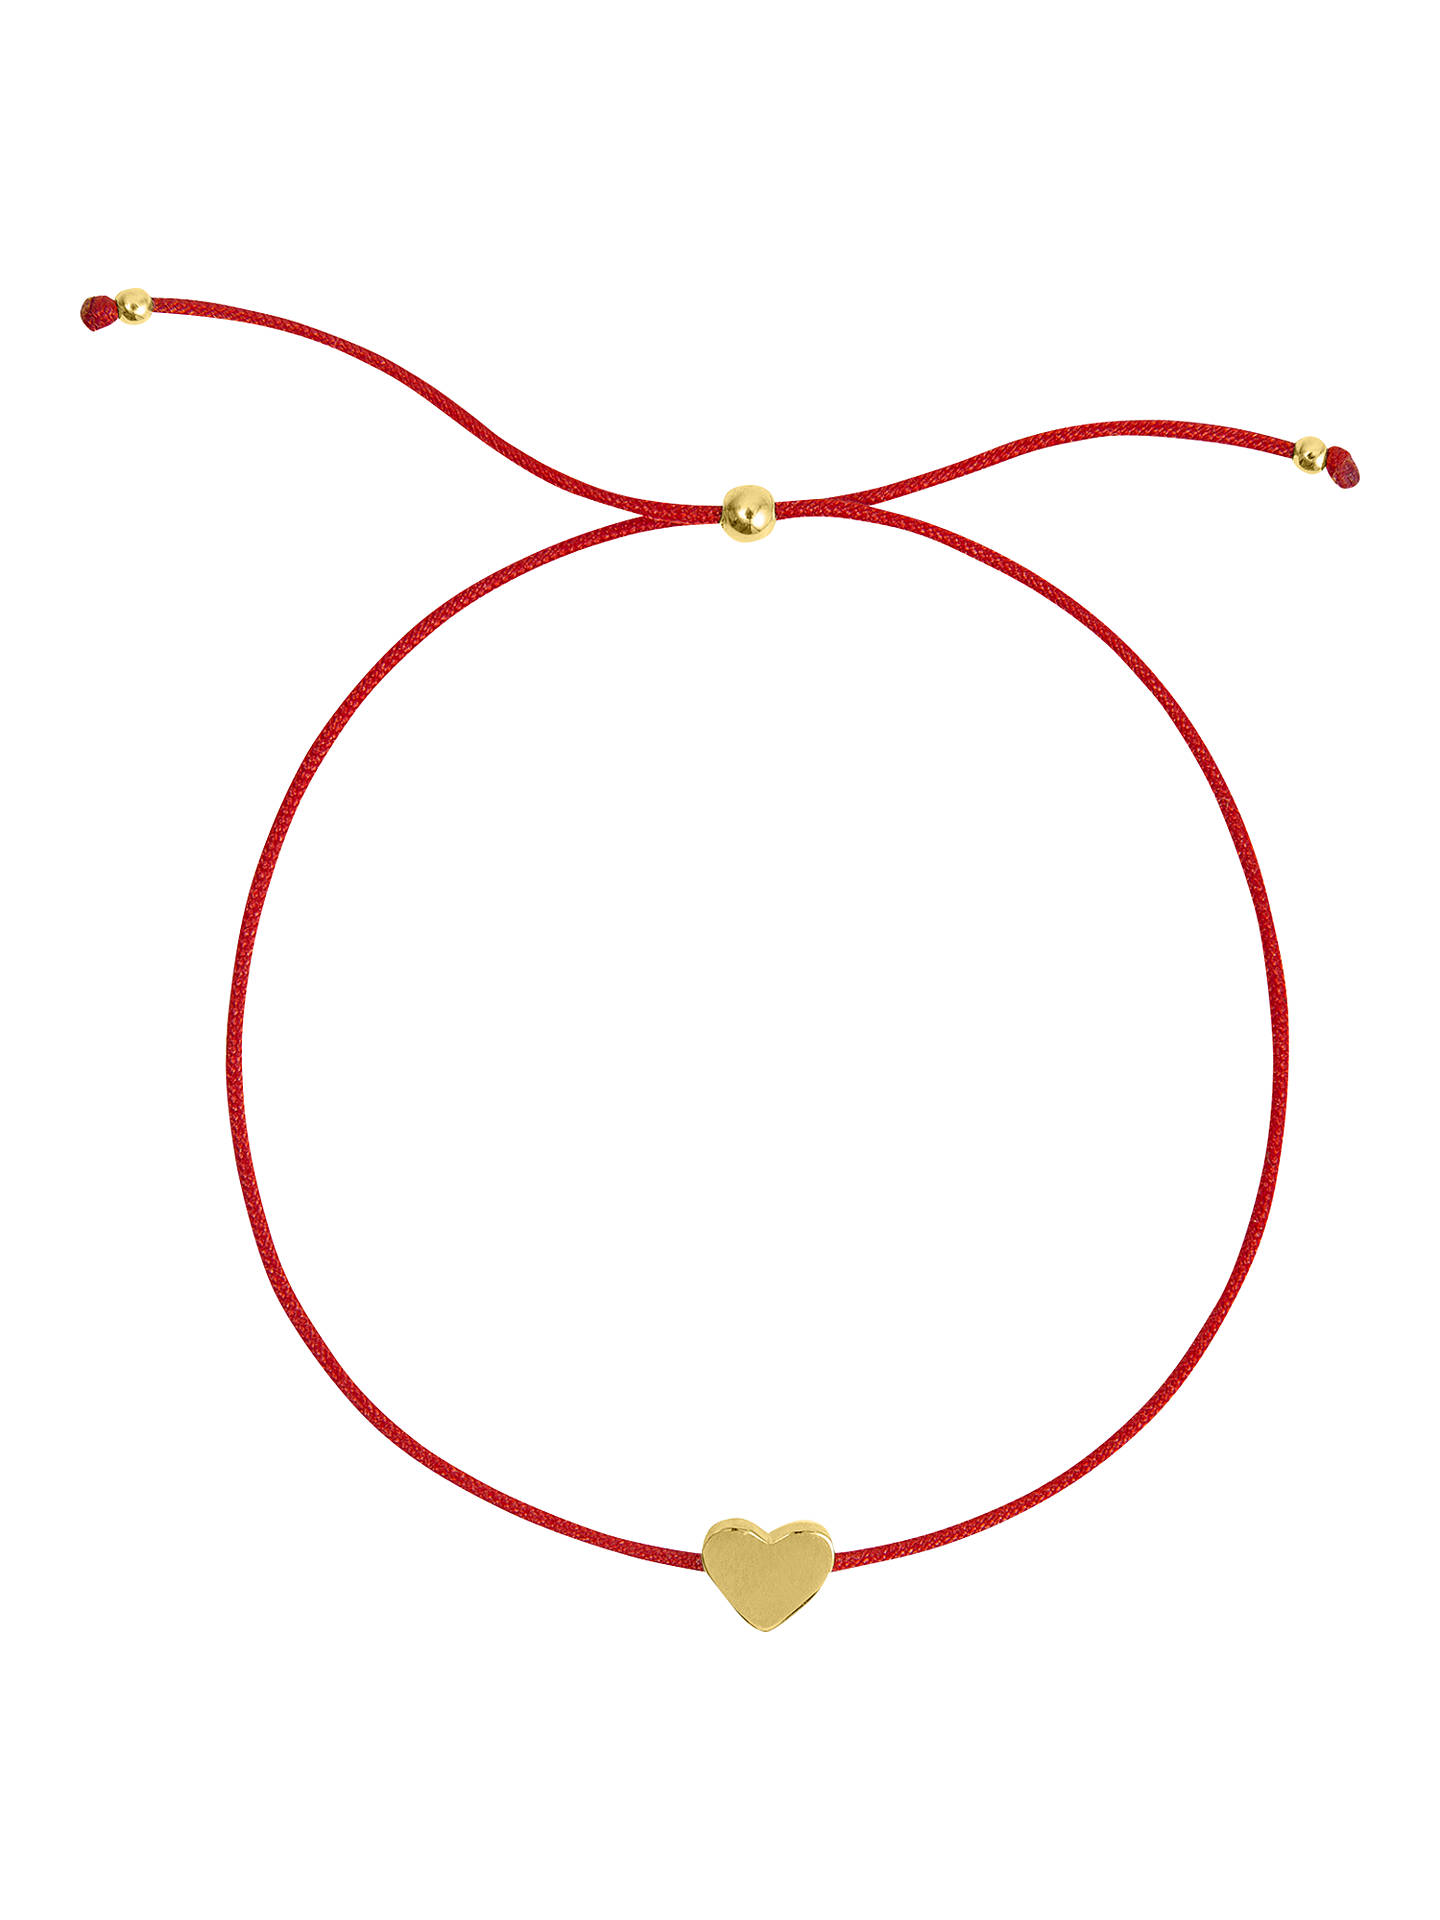 BuySophie by Sophie Heart Cord Friendship Bracelet, Gold/Red Online at johnlewis.com